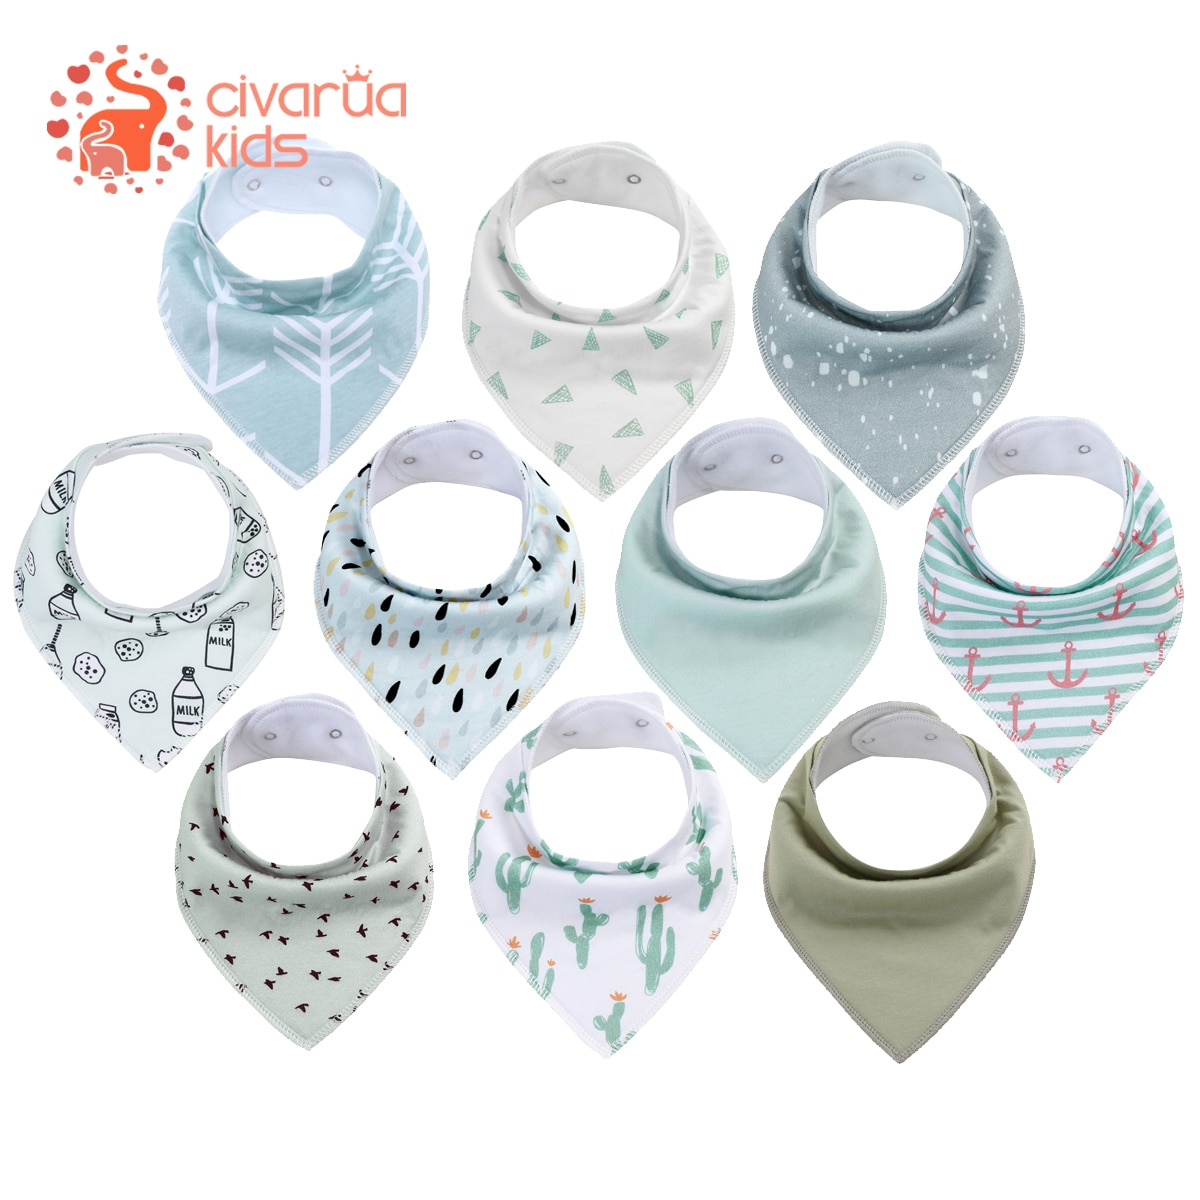 2pcs-baby-bibs-unisex-newborn-baby-bandana-bibs-for-drooling-and-teething-organic-cotton-soft-and-absorbent-hypoallergenic-bibs